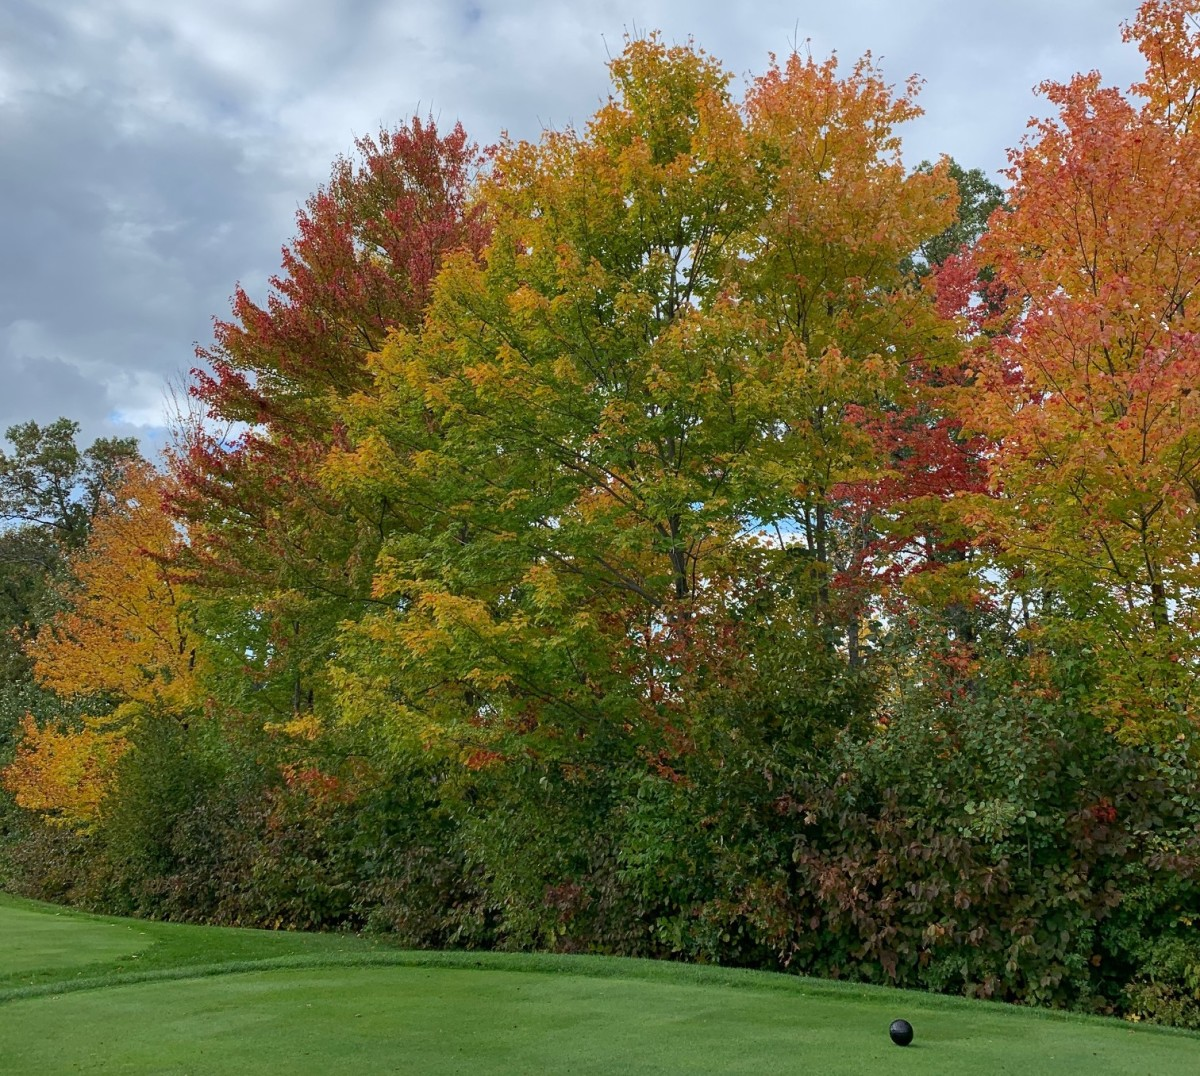 Fall colors on Oct. 6, 2019, in the Brainerd Lakes Area.